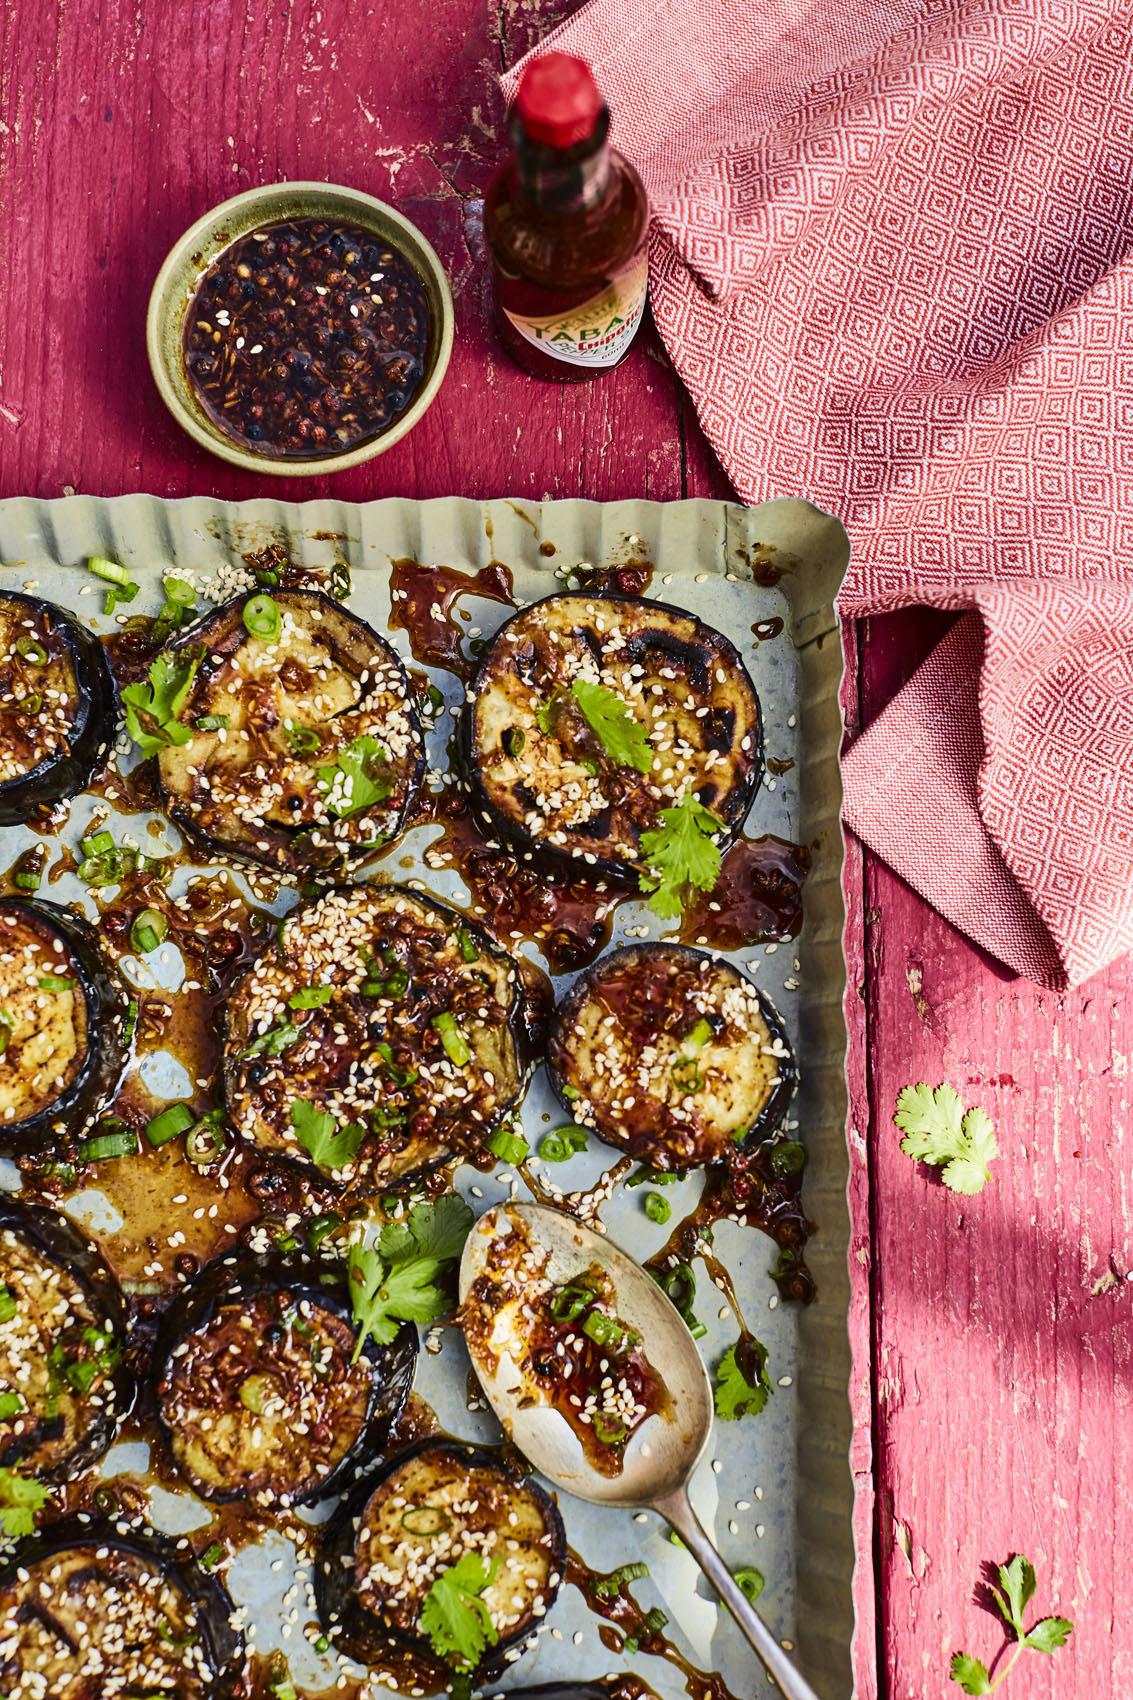 SteveRyan_Photographer_Food_Tabasco_Aubergine_43